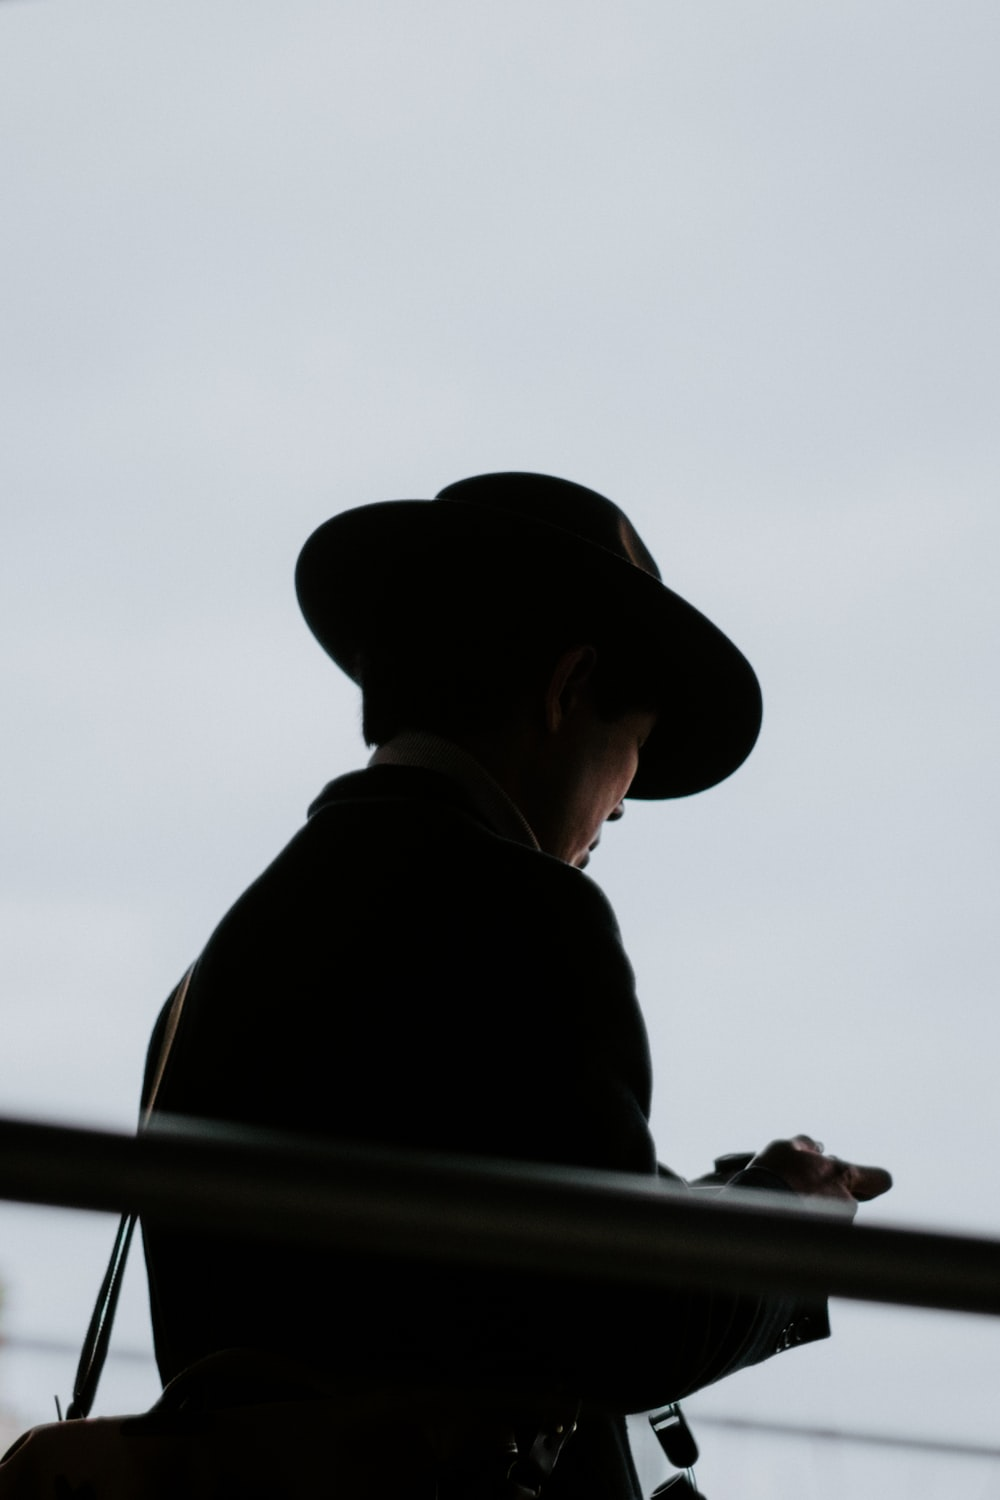 man in black hat and black shirt